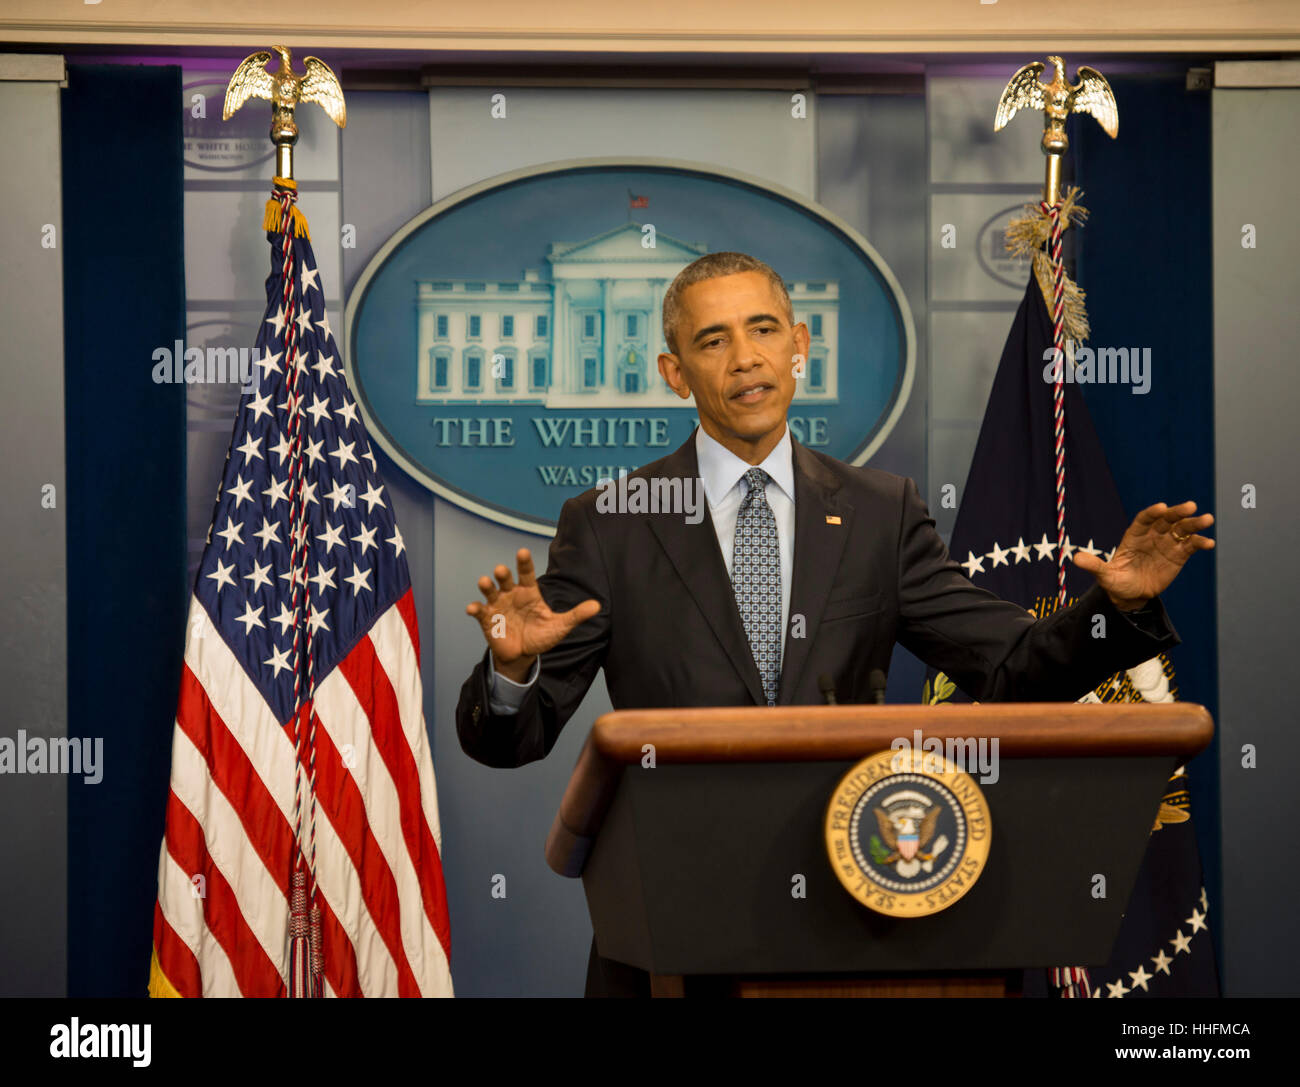 Washington, DC, USA. 18th Jan, 2017. President Barack Obama holds his last official press conference as President. - Stock Image